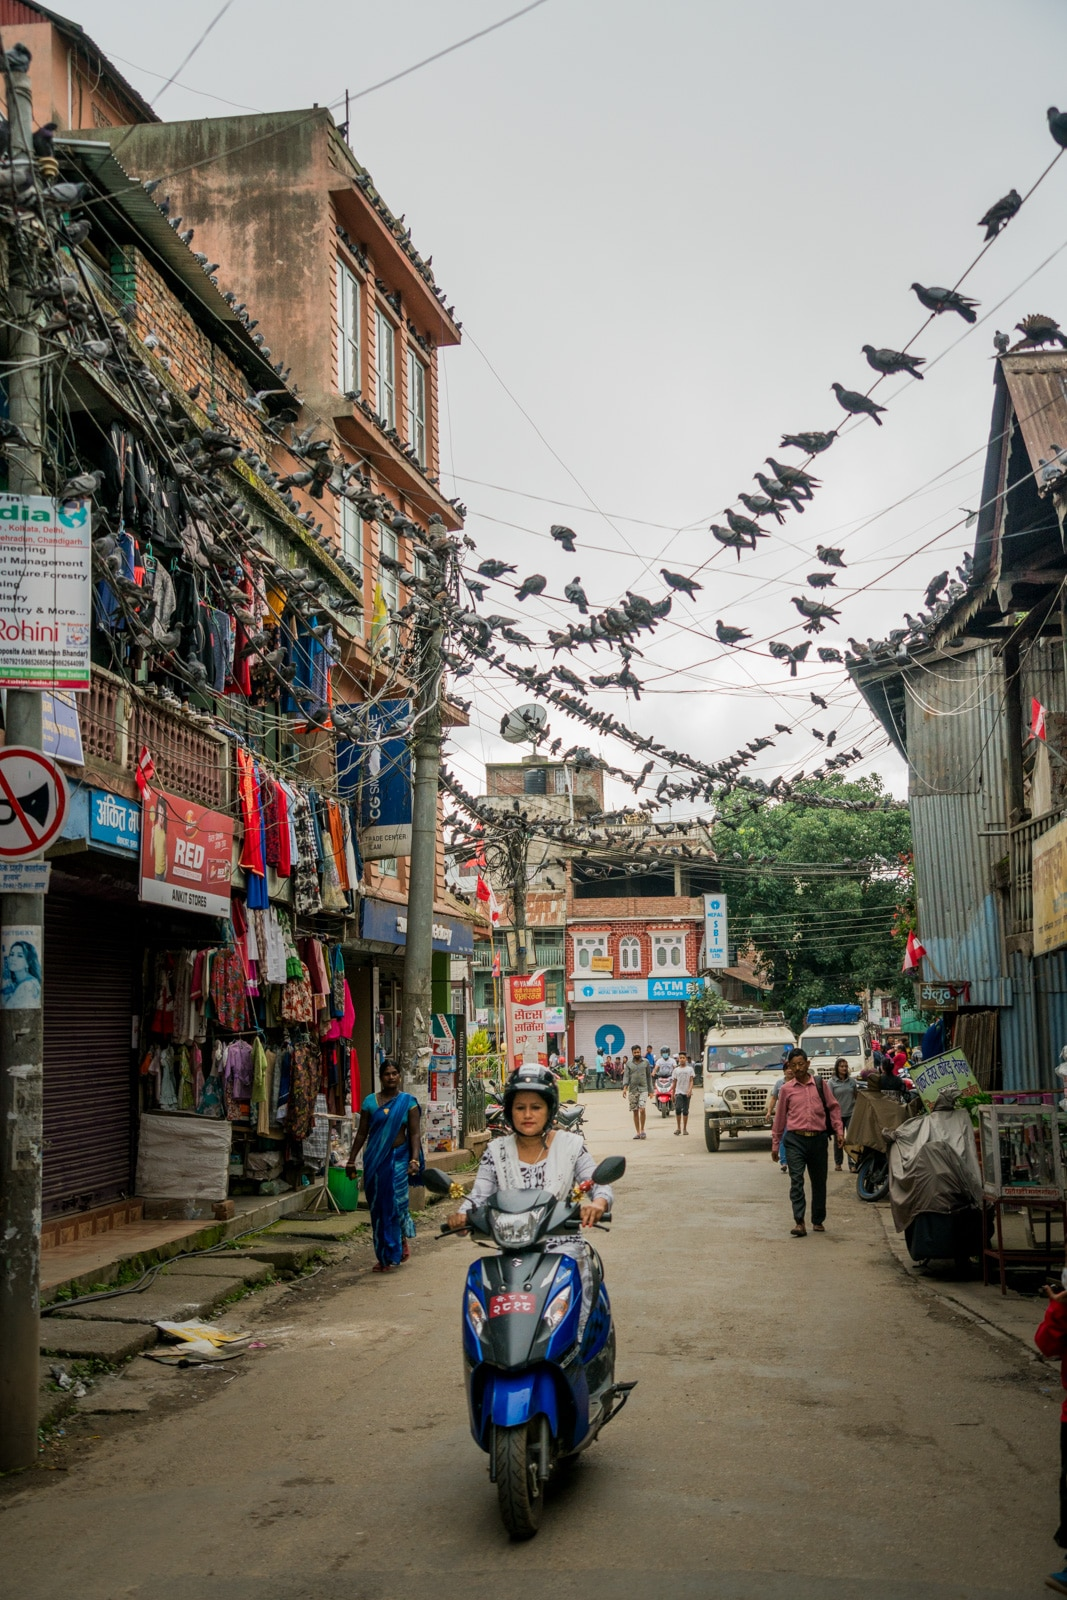 Pigeons, pedestrians, and passers by on the streets of Ilam, an off the beaten track town in East Nepal famous for its teas.